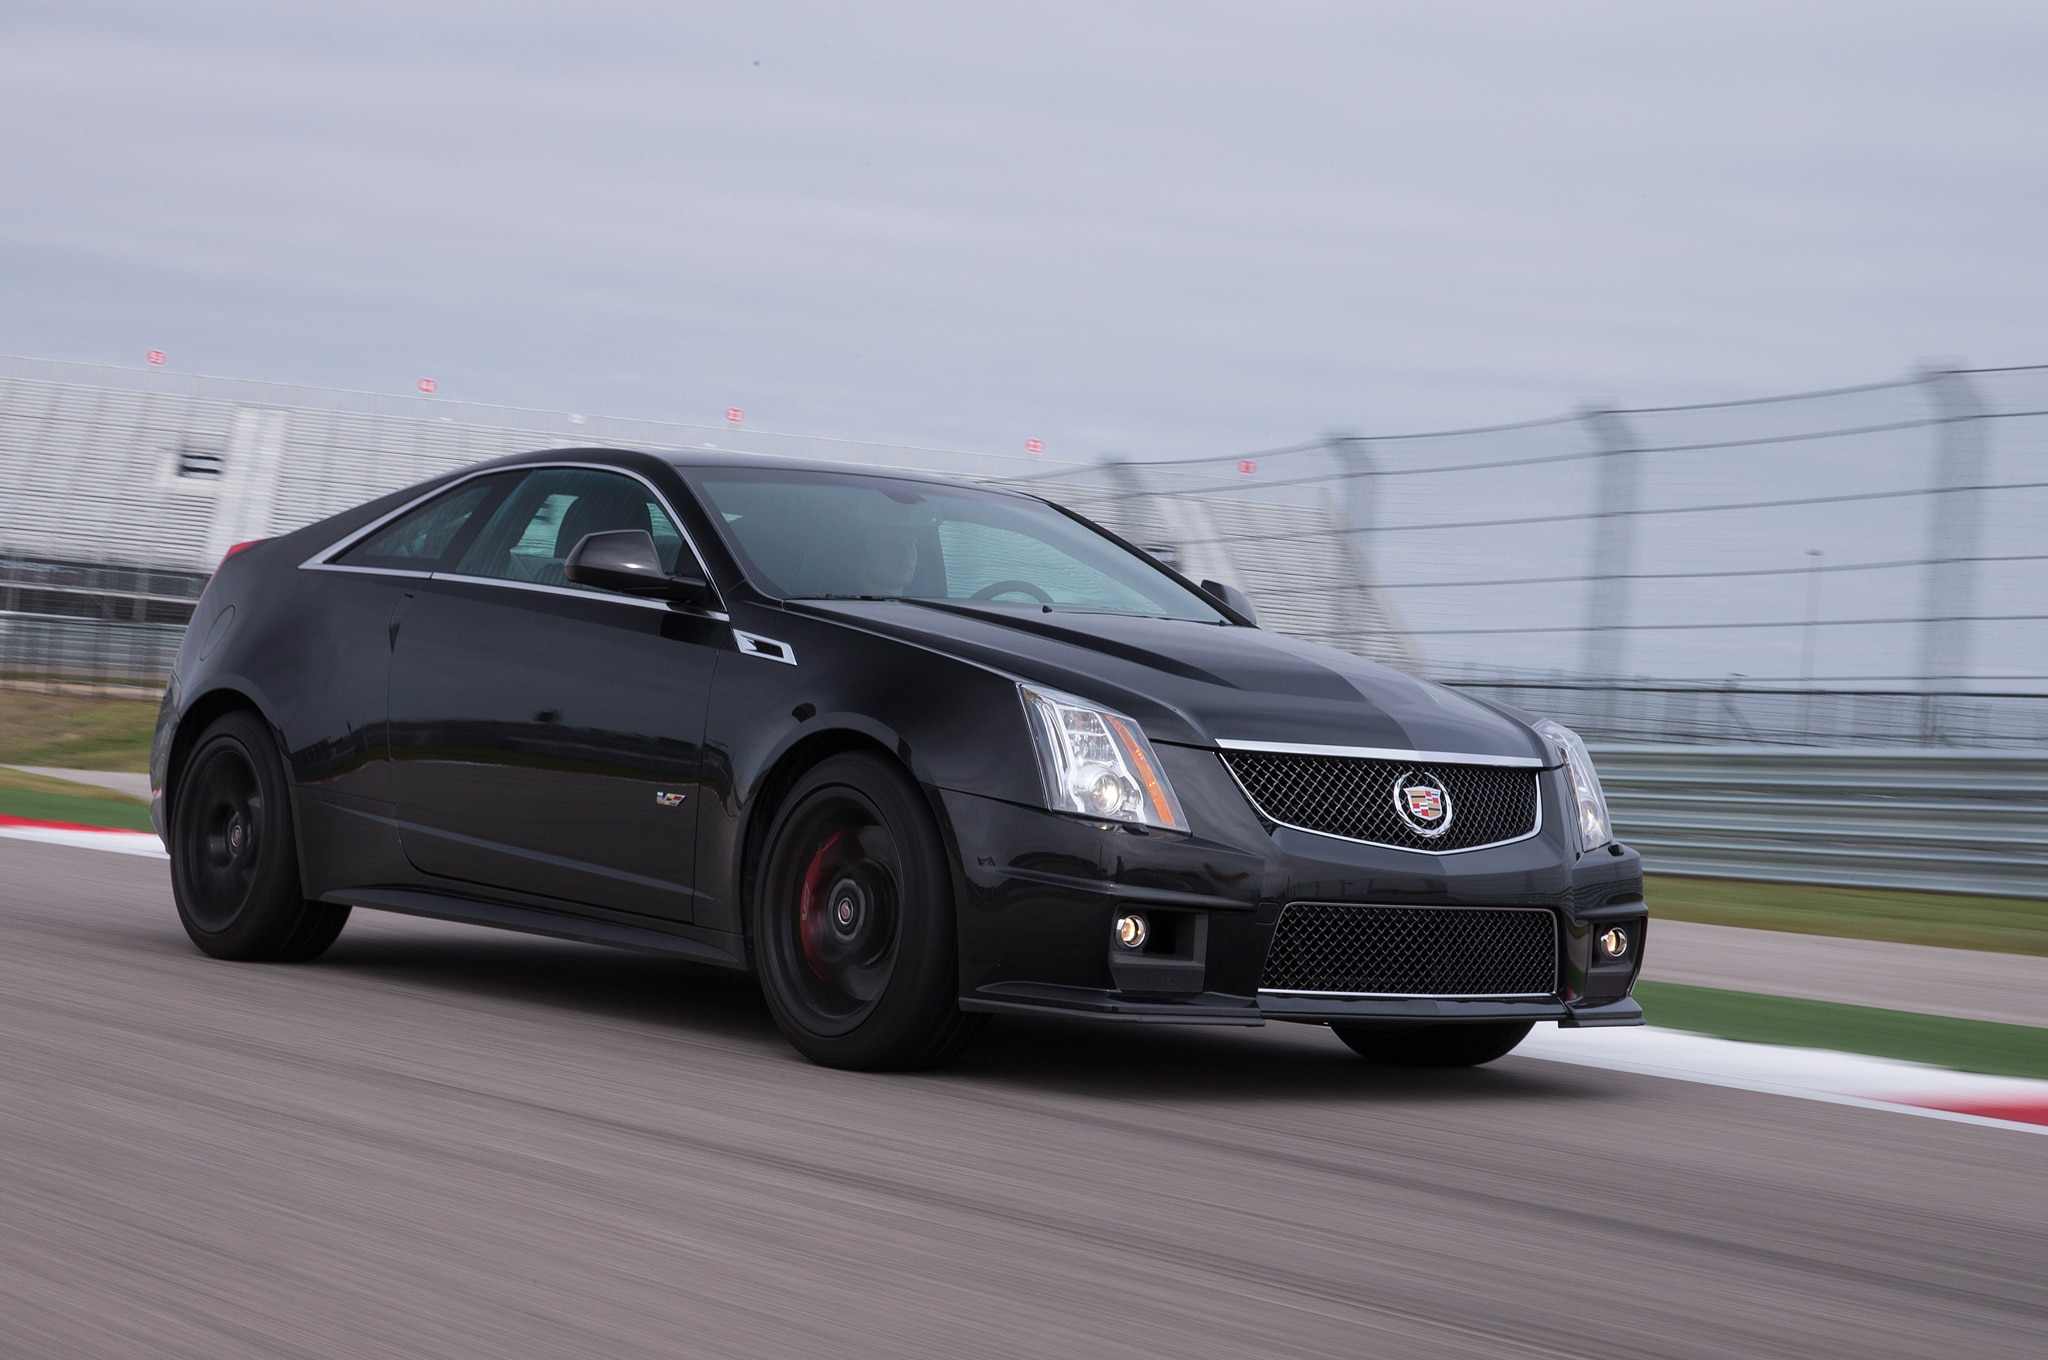 Cadillac Cts V Coupe Specs >> 2015 Cadillac CTS-V Coupe Special Edition Announced